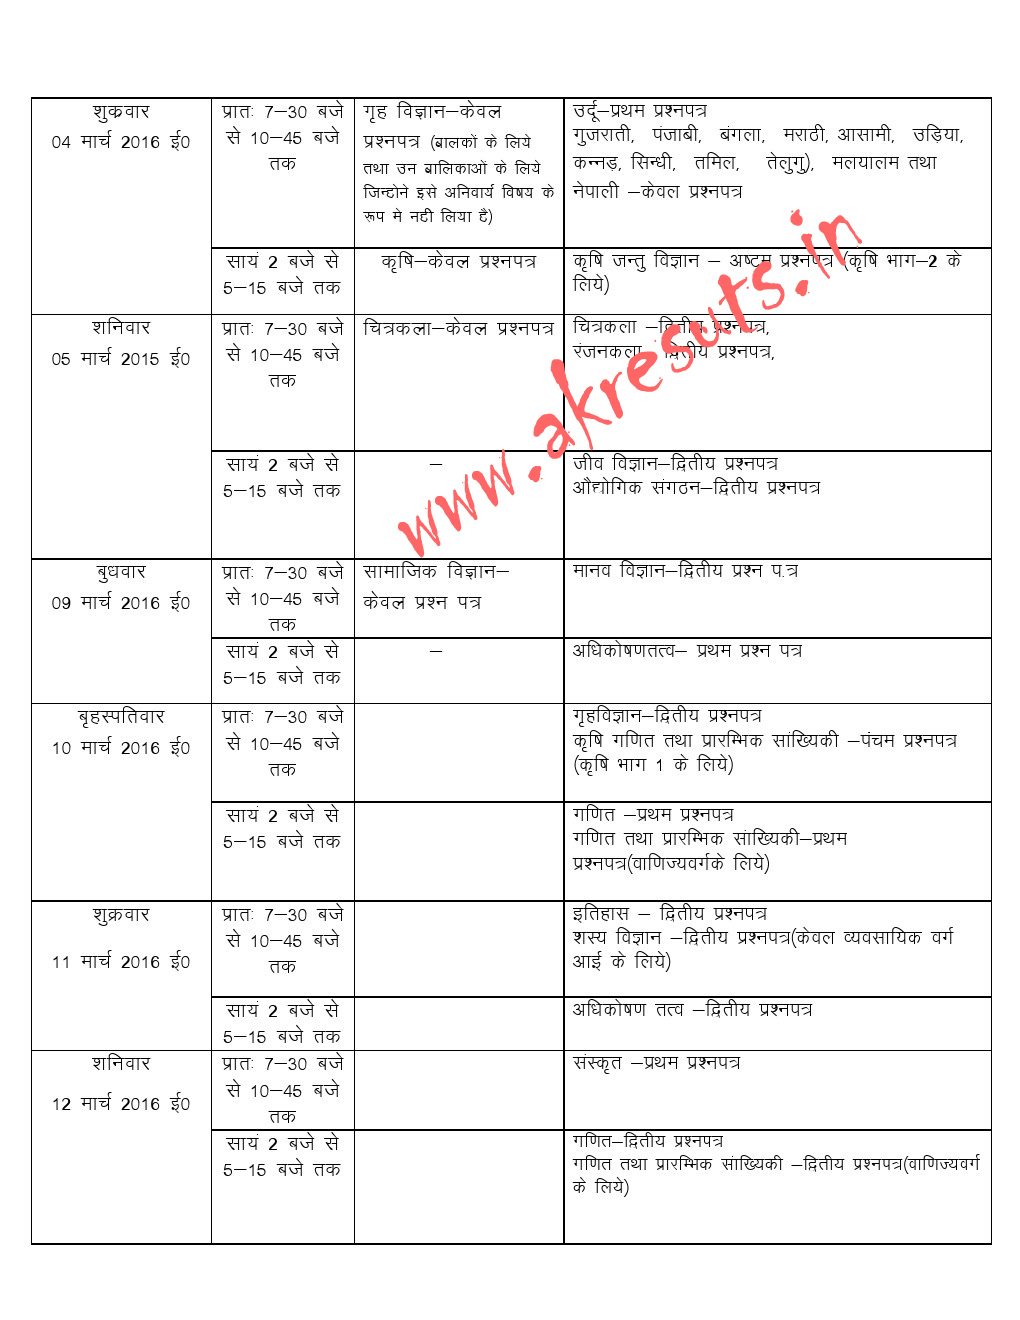 12th class time table 2016 download calendars for 12th time table